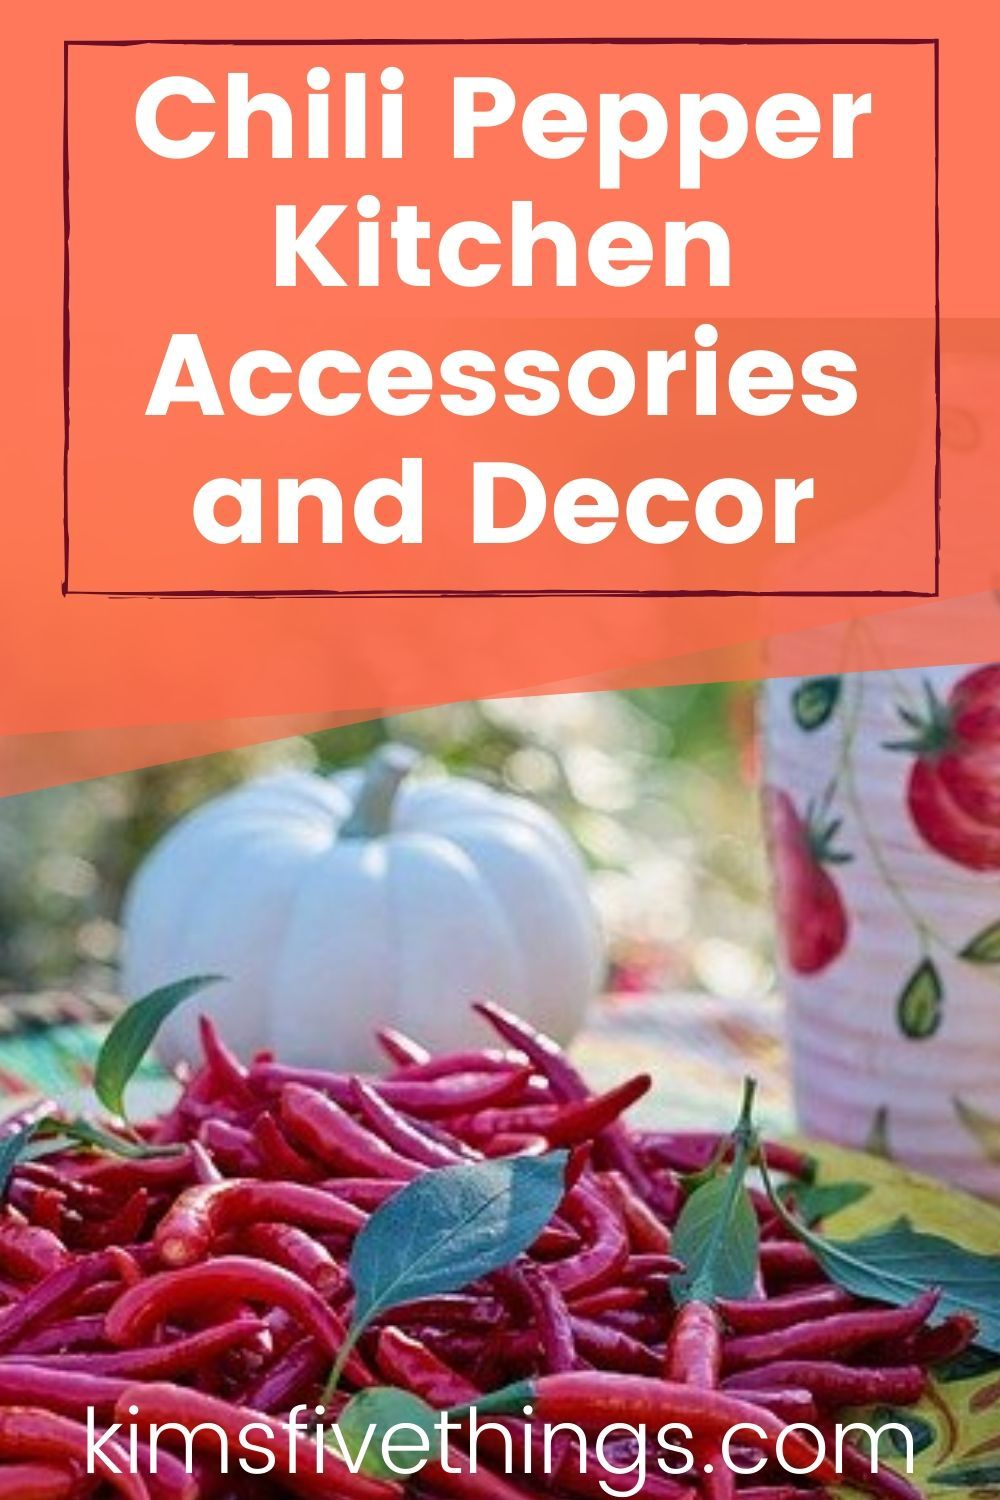 Chili Pepper Themed Kitchen Ideas That Add Spice And Color Organized Sparkle Kitchen Ledge Decor Mexican Kitchen Decor Stuffed Peppers